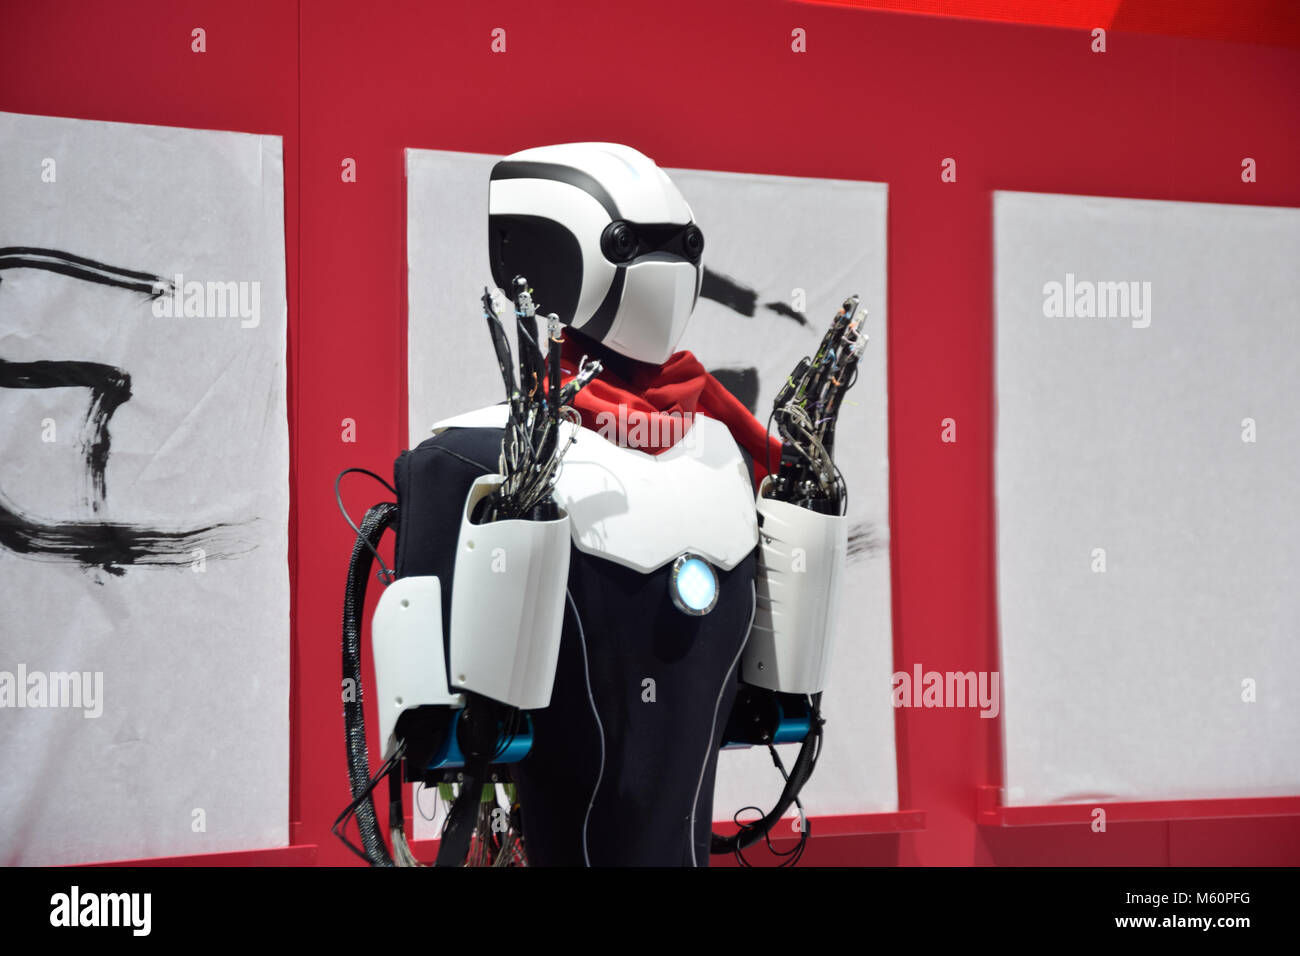 Barcelona, Spain. 26th February, 2018, 5G Robot, Remote Humanoid Assistant, at the MWC in Barcelona, Credit: Jovana - Stock Image